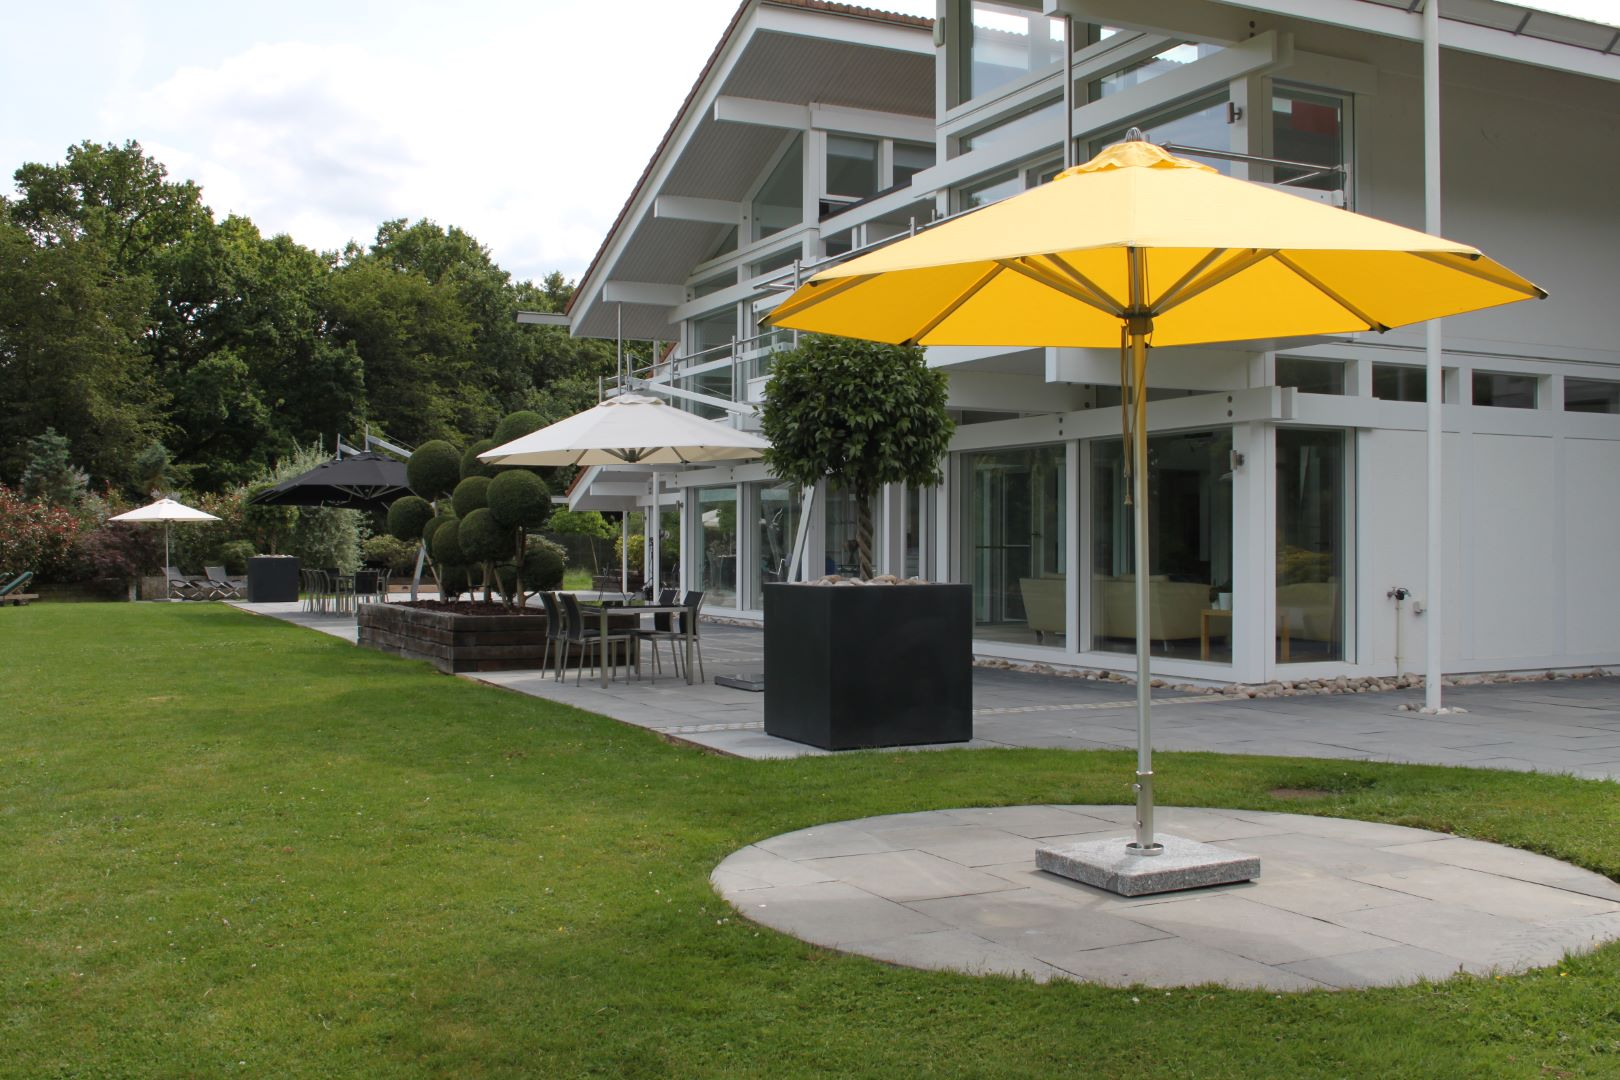 <p>Parasols Pacific – Aluminium Centre Pole – Hotel Outdoor Restaurant Terrace Shade Cover</p> <p></p> <p>Premium, stylish, and beautiful aluminium centre pole commercial parasol offering the ideal shade solution providing comfort and protection from the environmental conditions be it blazing hot sunshine or pouring rain.</p> <p></p> <p>Suitable for both commercial and residential settings enabling customers to experience a continental atmosphere</p>